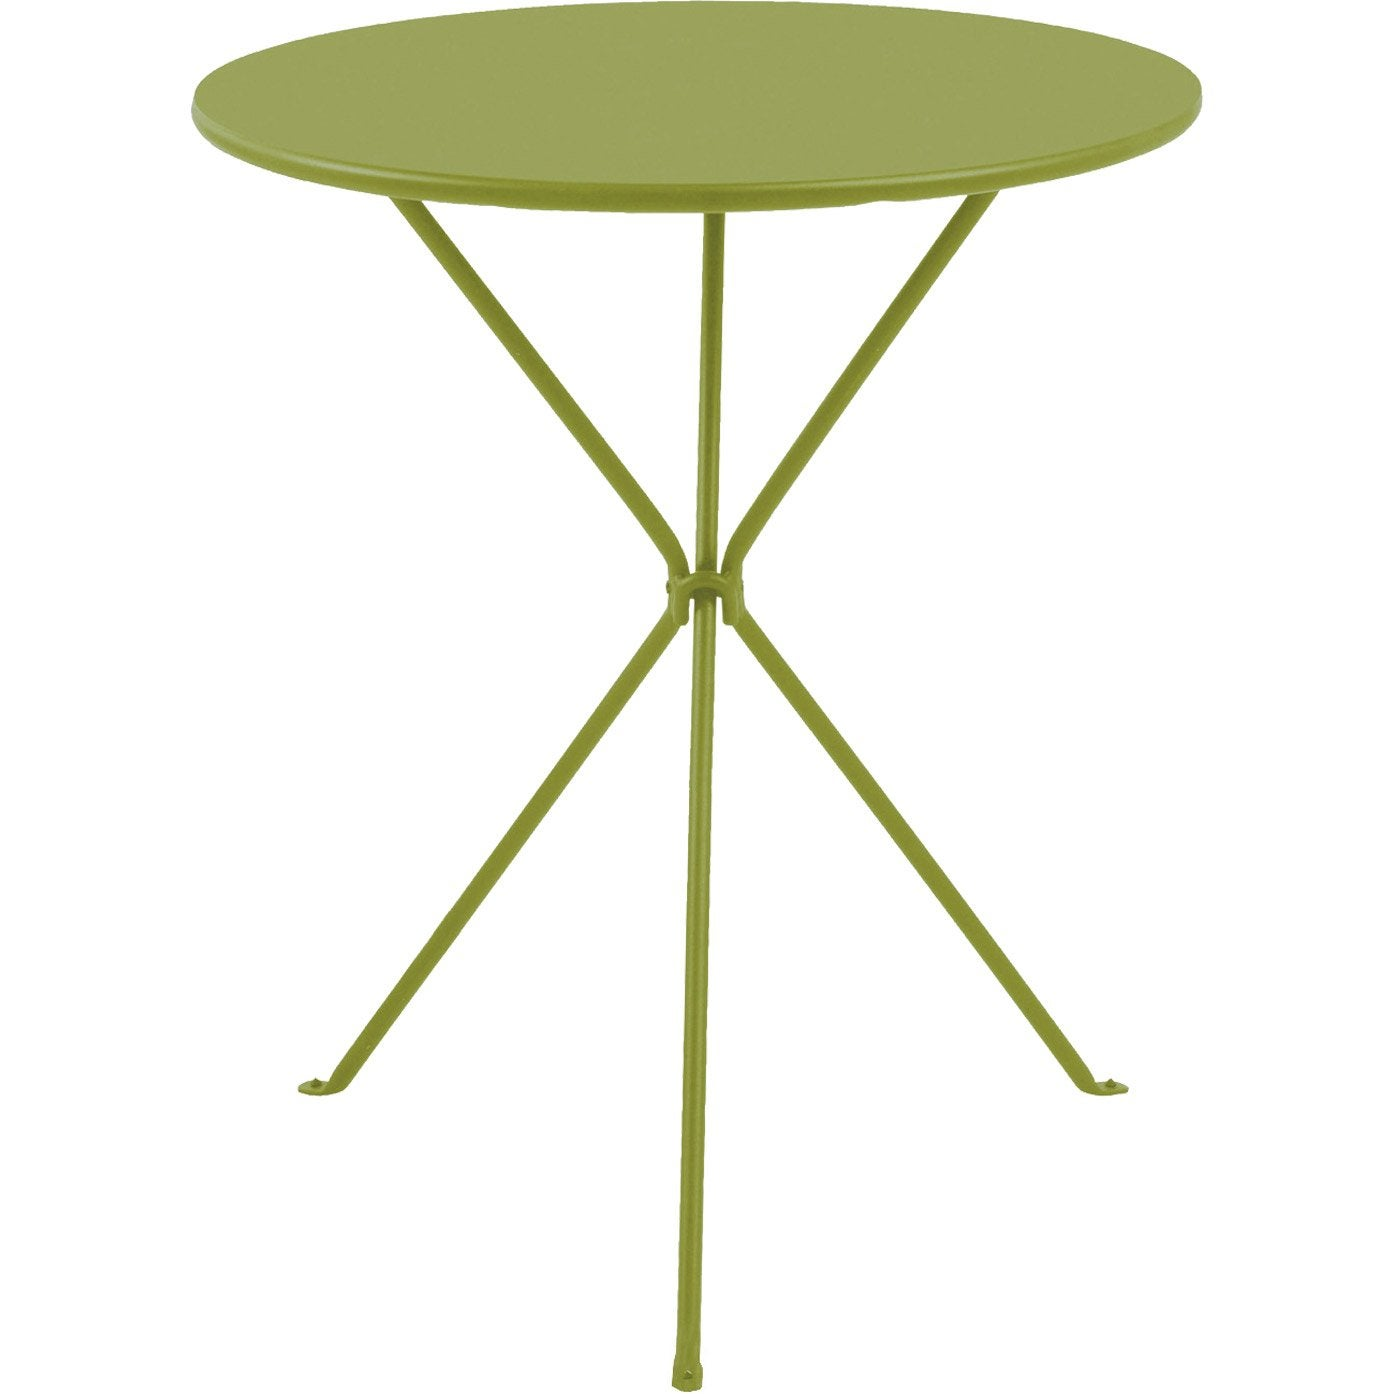 Table basse Guéridon ronde vert 2 personnes  Leroy Merlin -> Leroy Merlin Table Basse Rangement